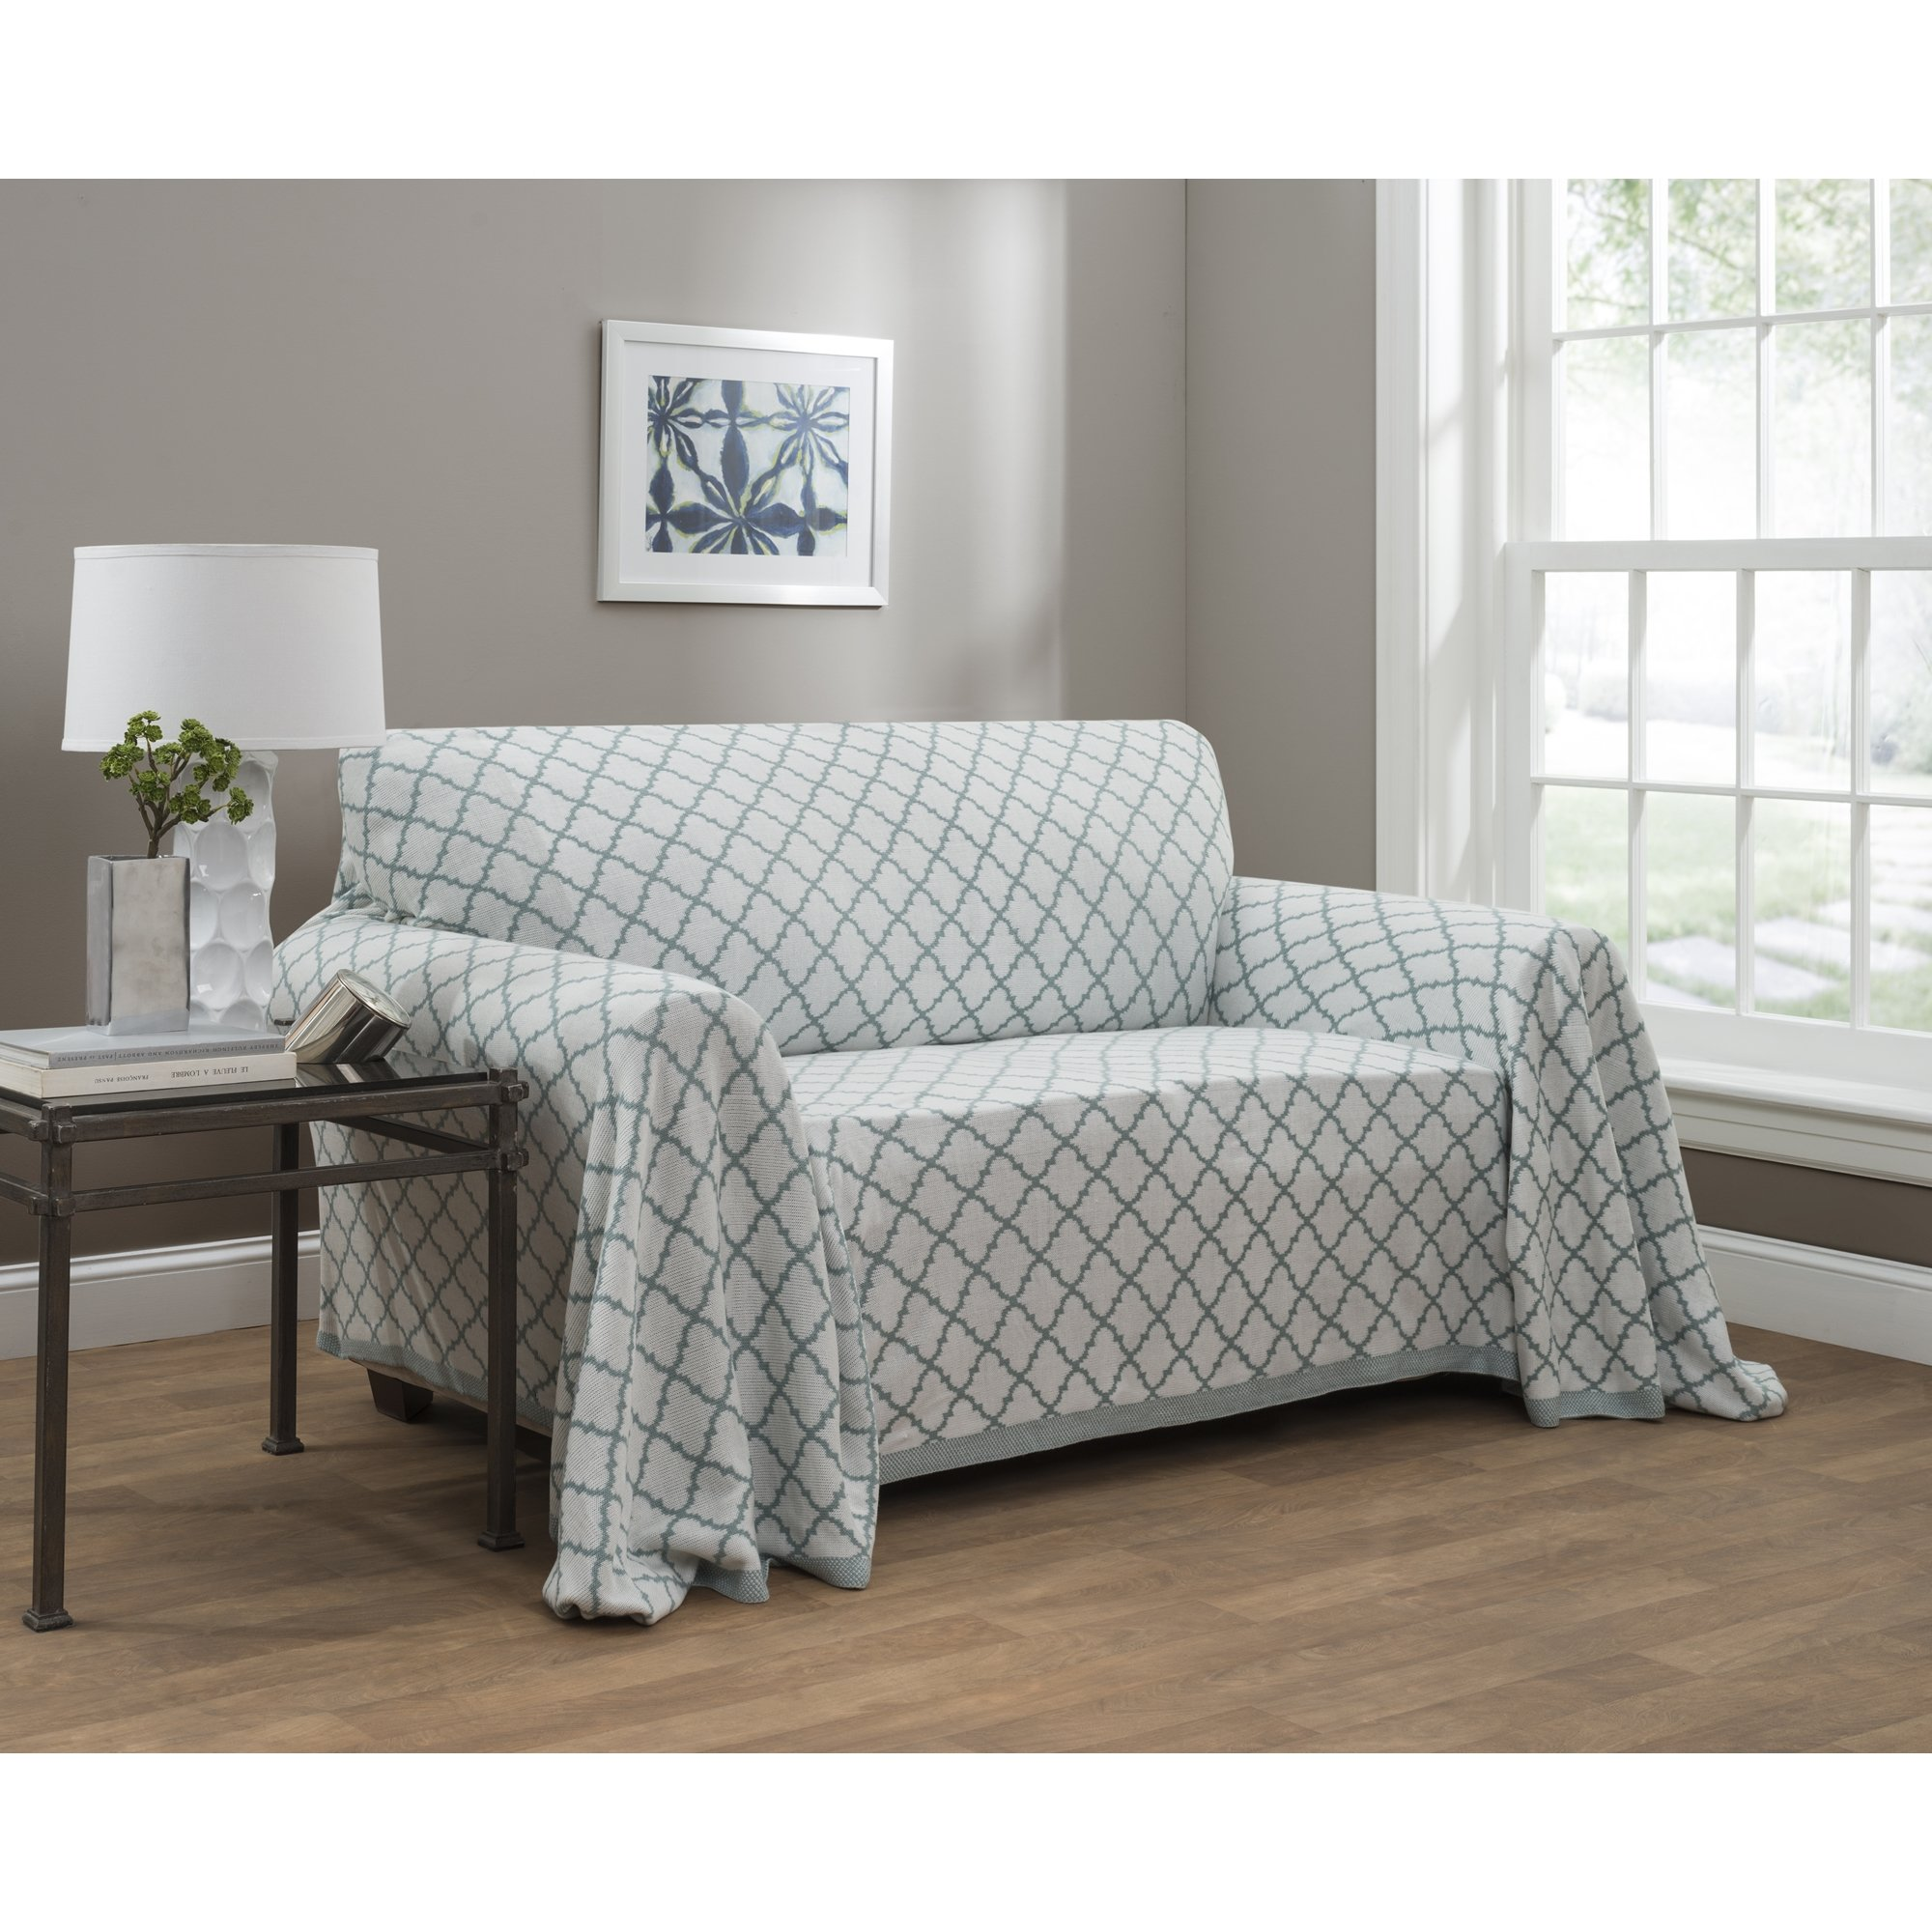 Innovative Textile Solutions Jeffery Home Ogee Reversible Throw - 170x70, Spa